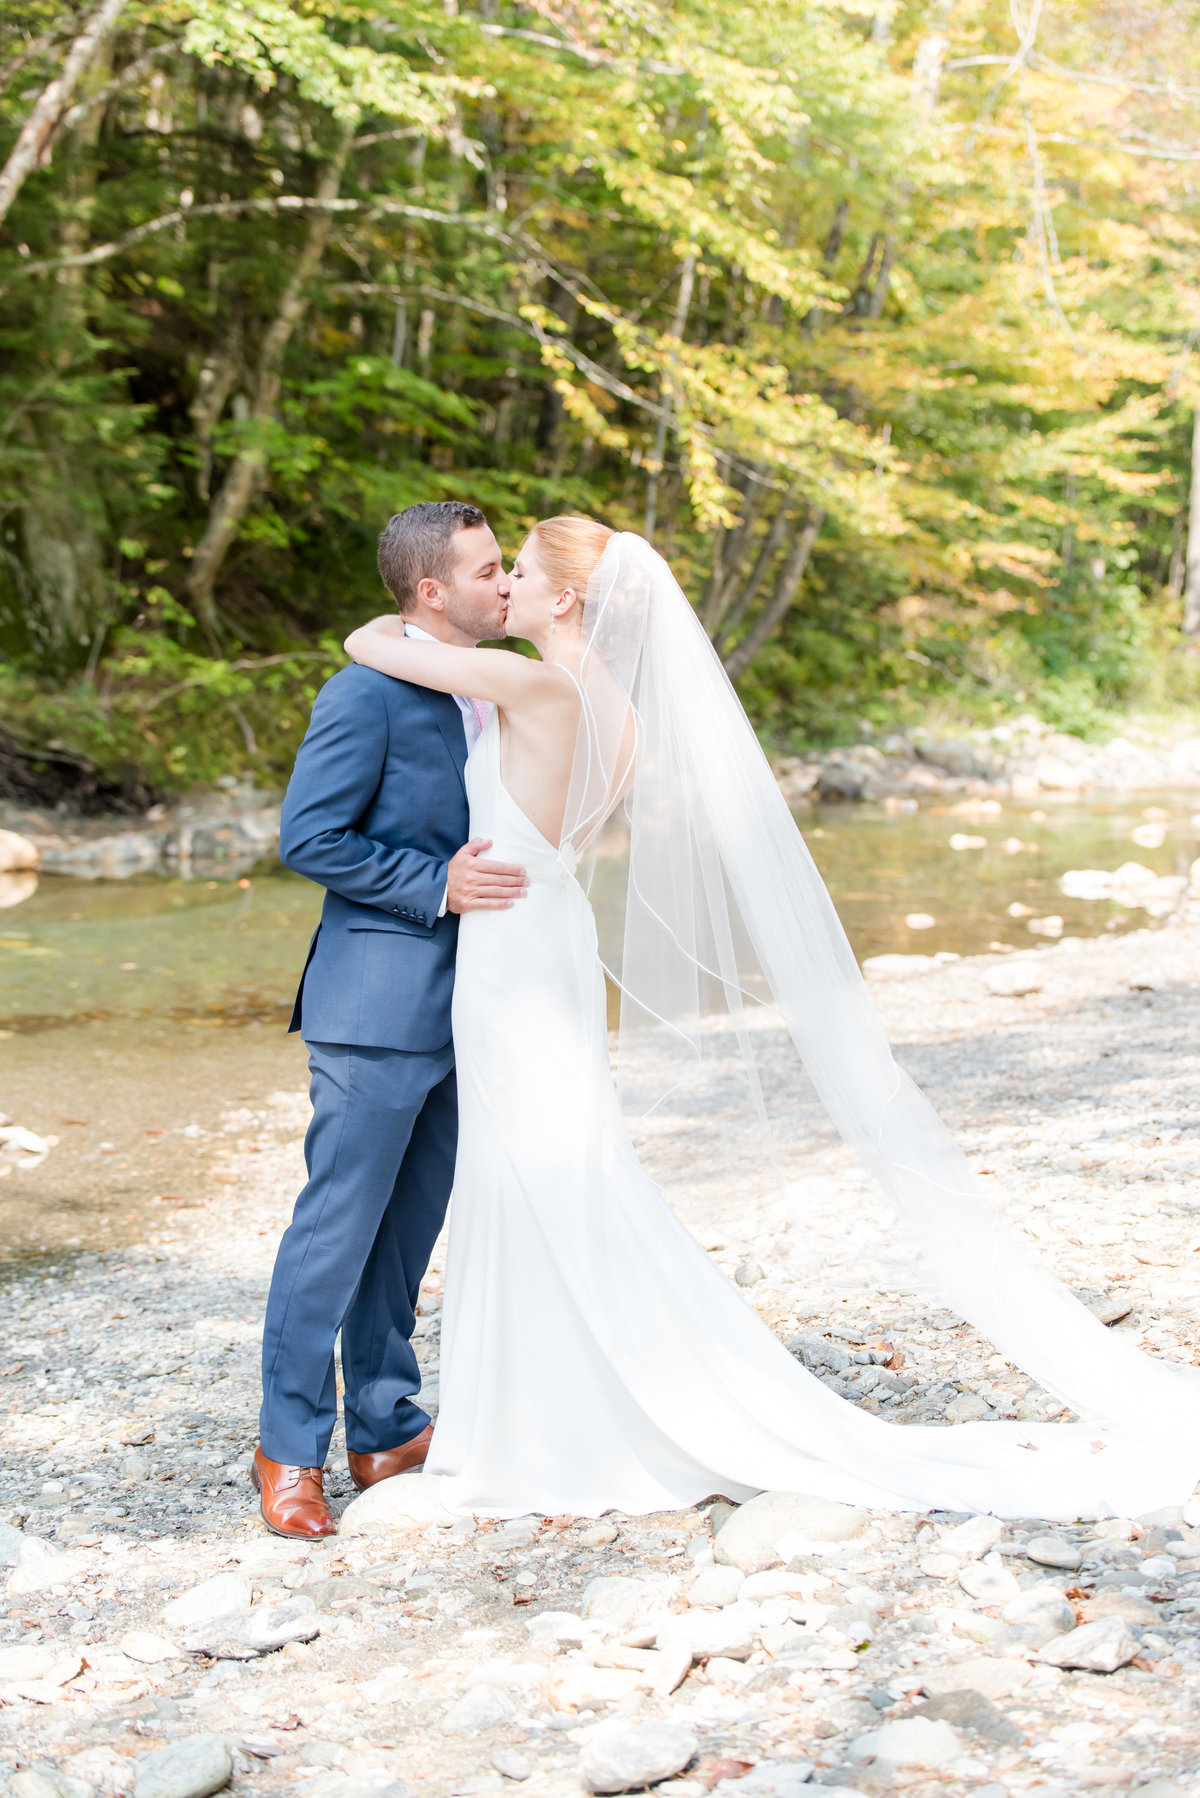 Sugarbush Vermont Wedding-Vermont Wedding Photographer-  Ashley and Joe Wedding 202429-6